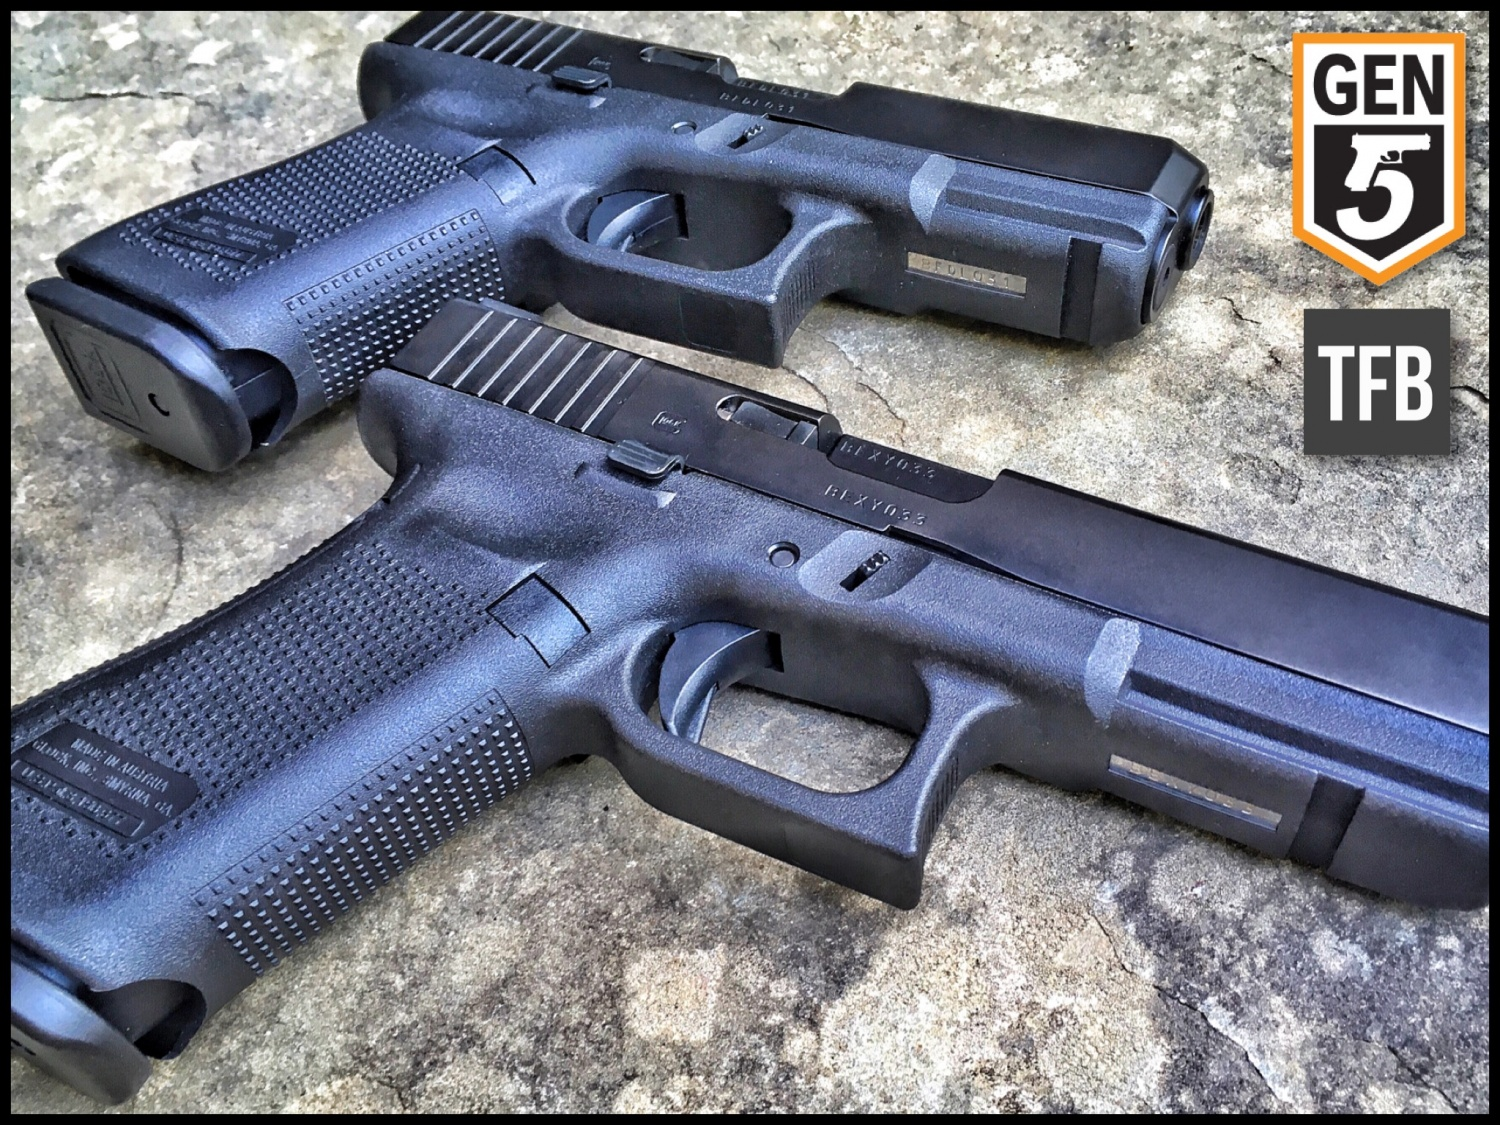 OFFICIAL: The New GLOCK Gen5 Has Arrived -The Firearm Blog